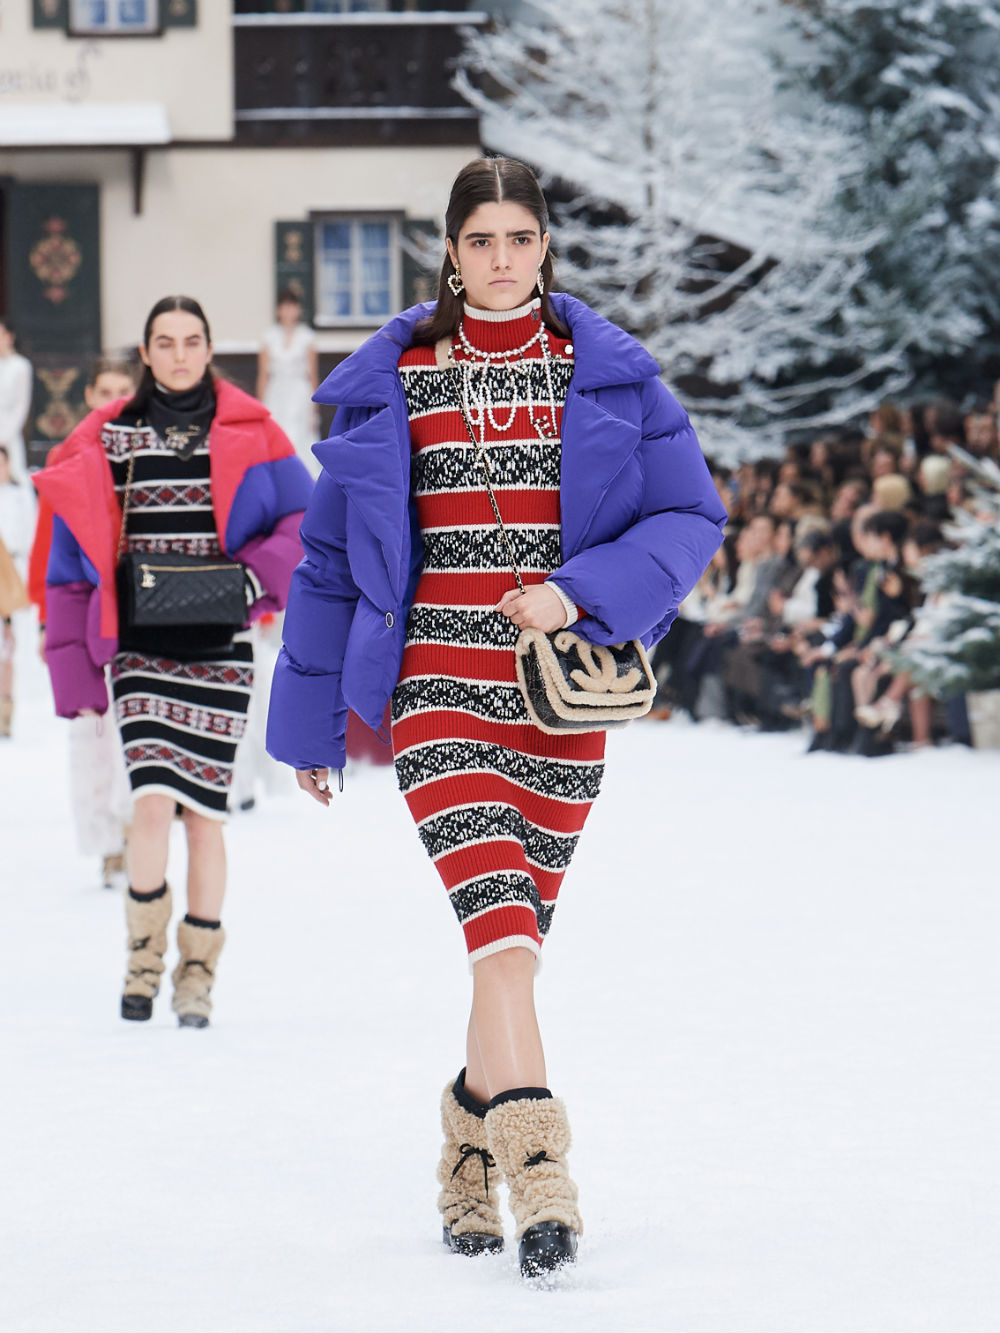 FALL-WINTER 201920 READY-TO-WEAR COLLECTION (36)